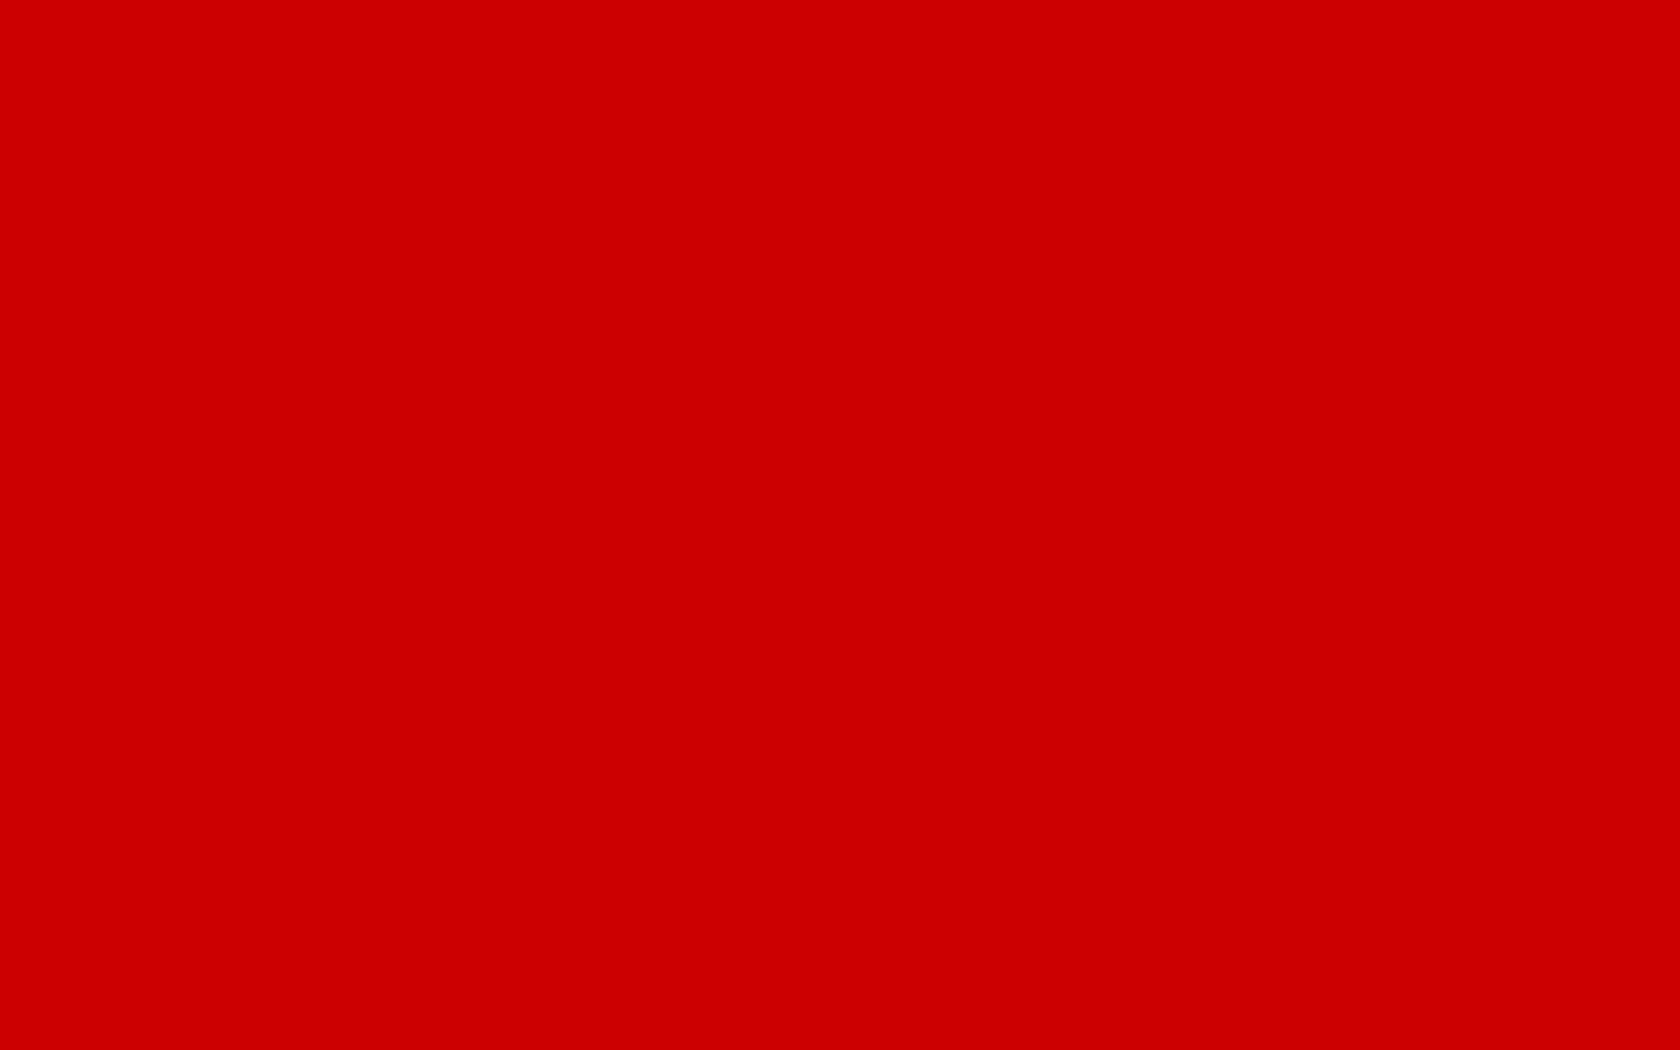 1680x1050 Boston University Red Solid Color Background